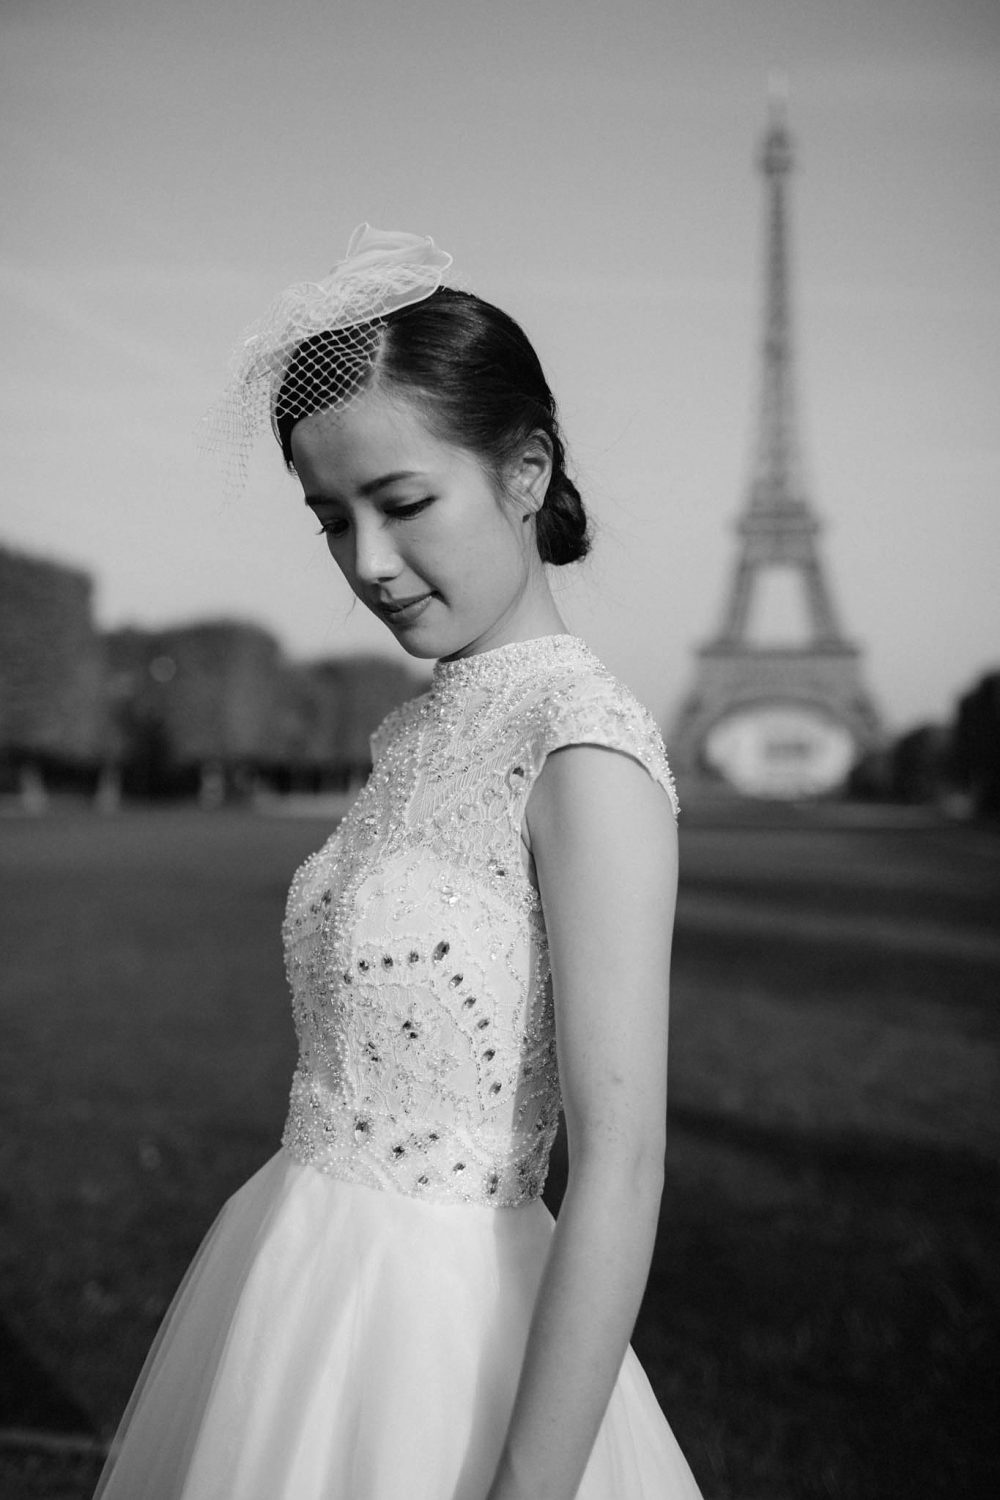 bride in front of Eiffel tower